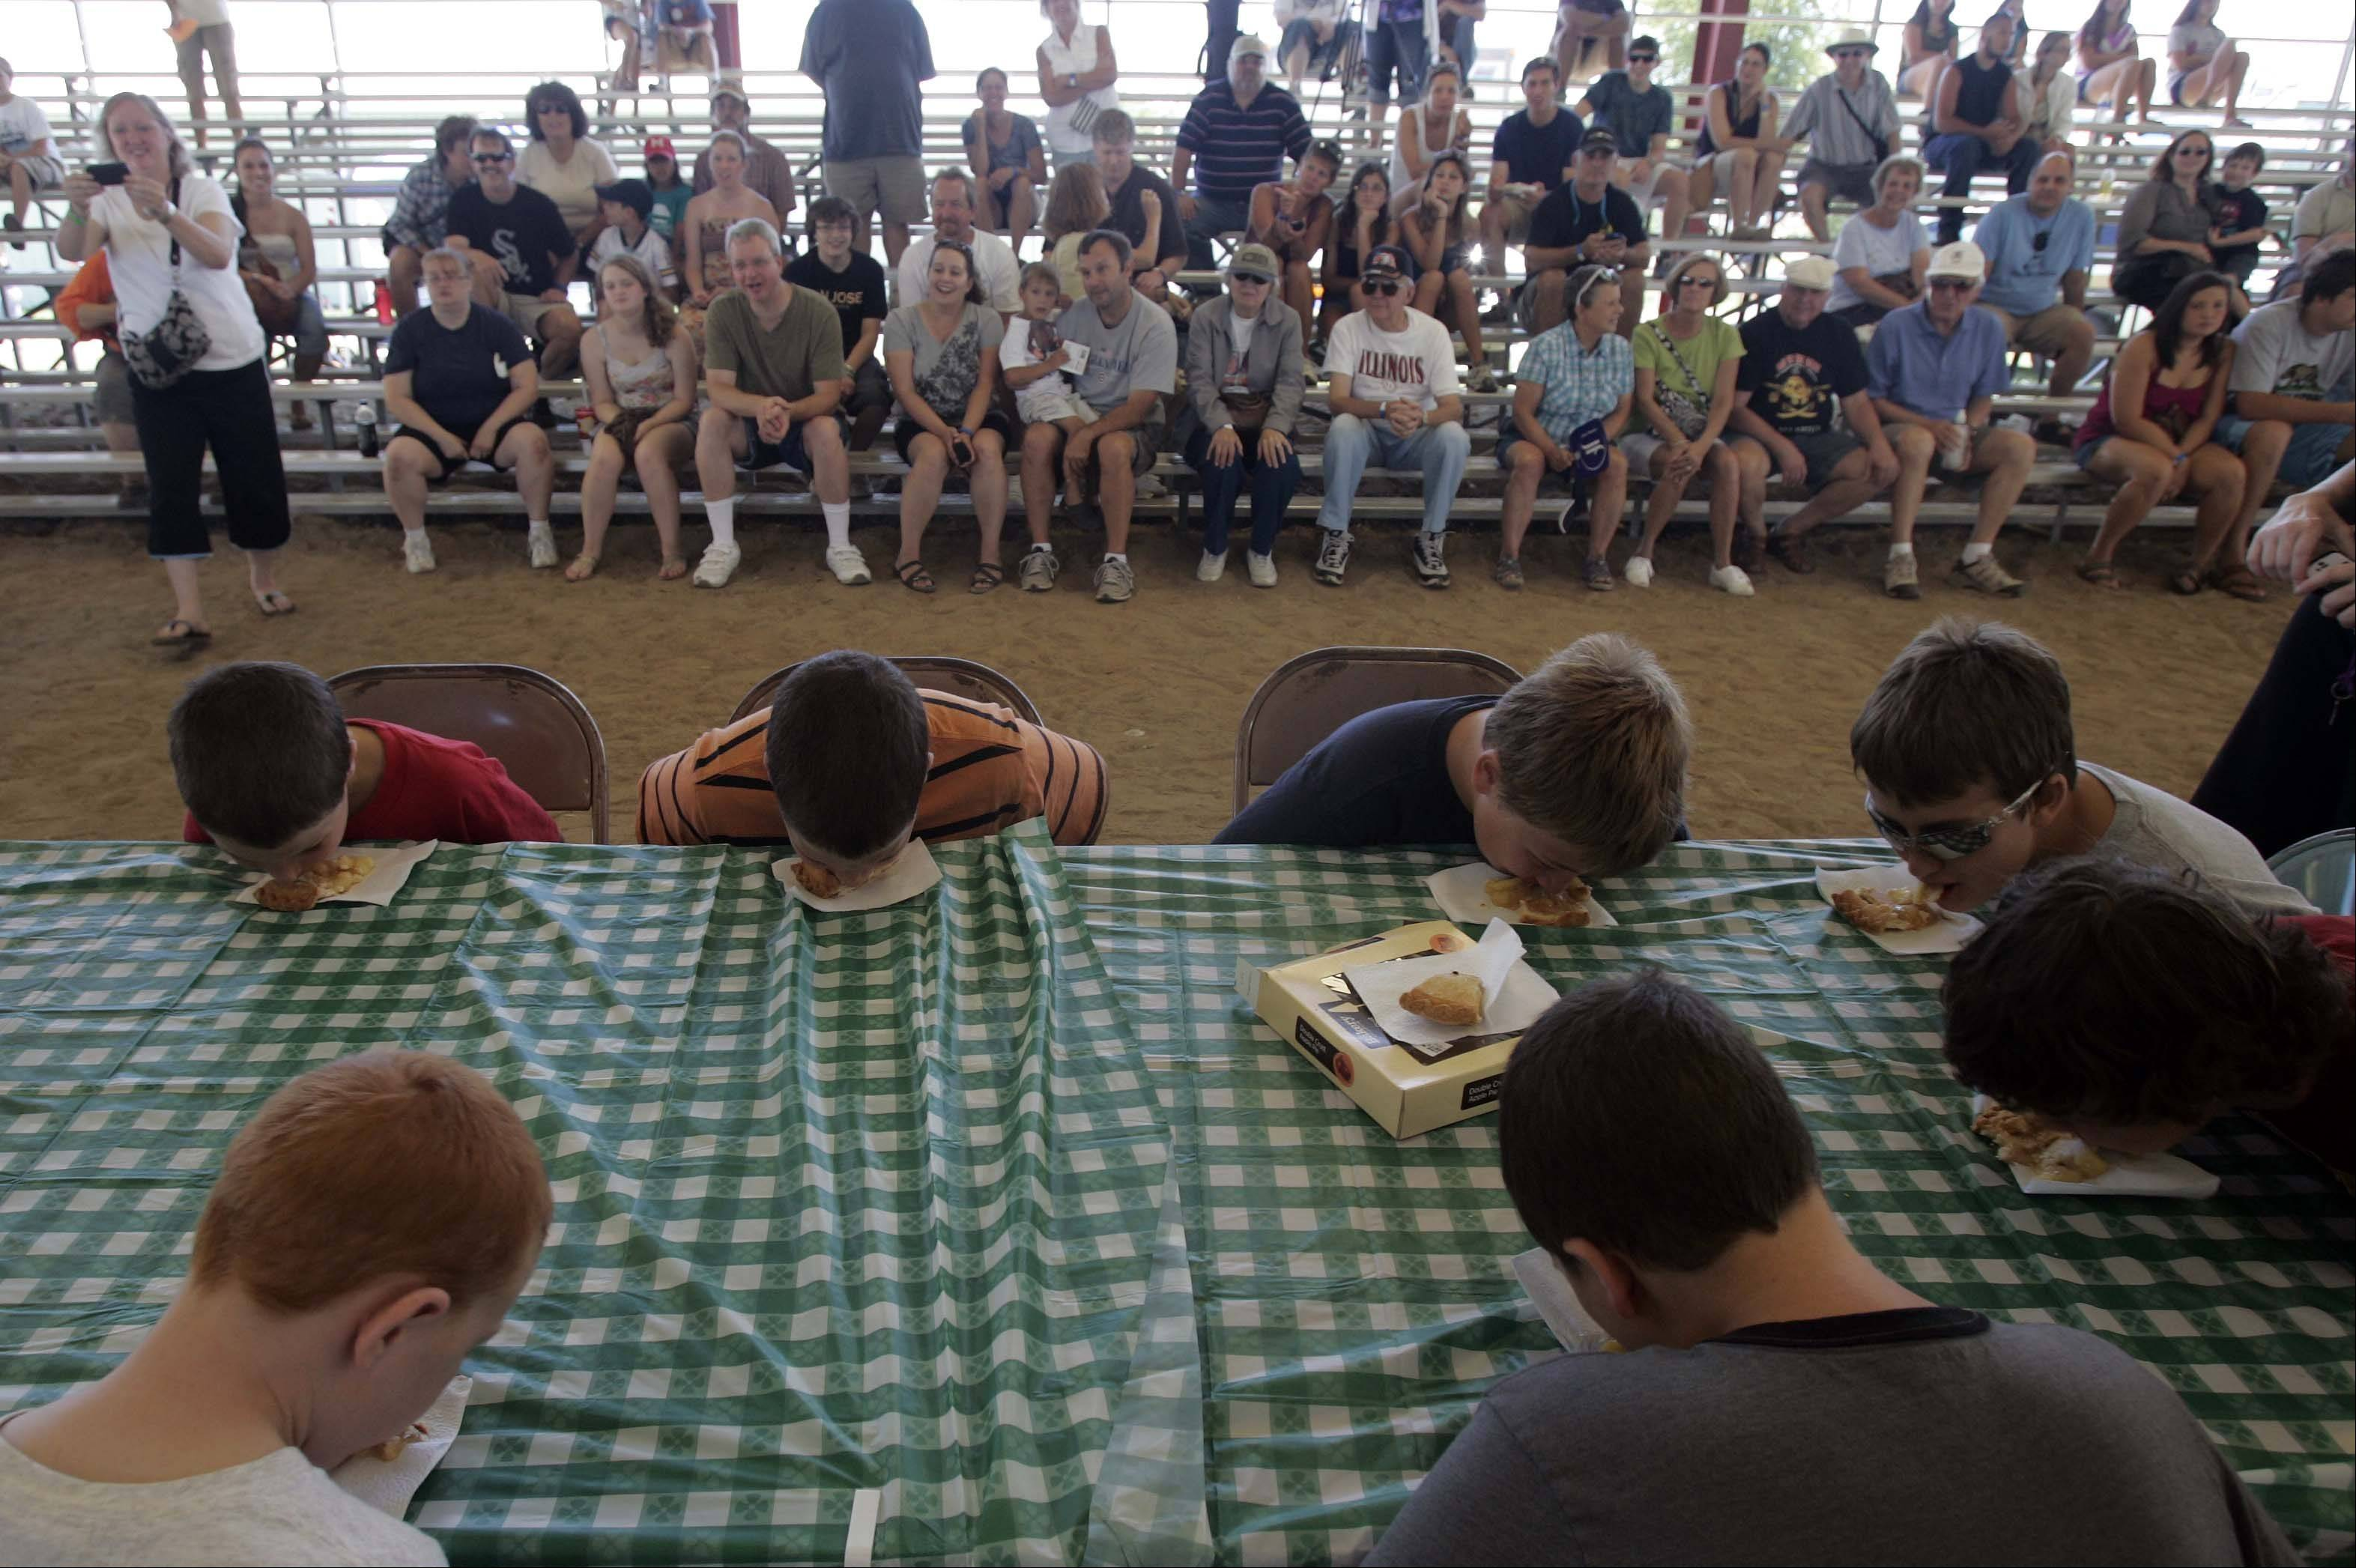 The 6- to 12-year-old group gets their faces full of pie during the pie eating contest Sunday at the McHenry County Fair in Woodstock.